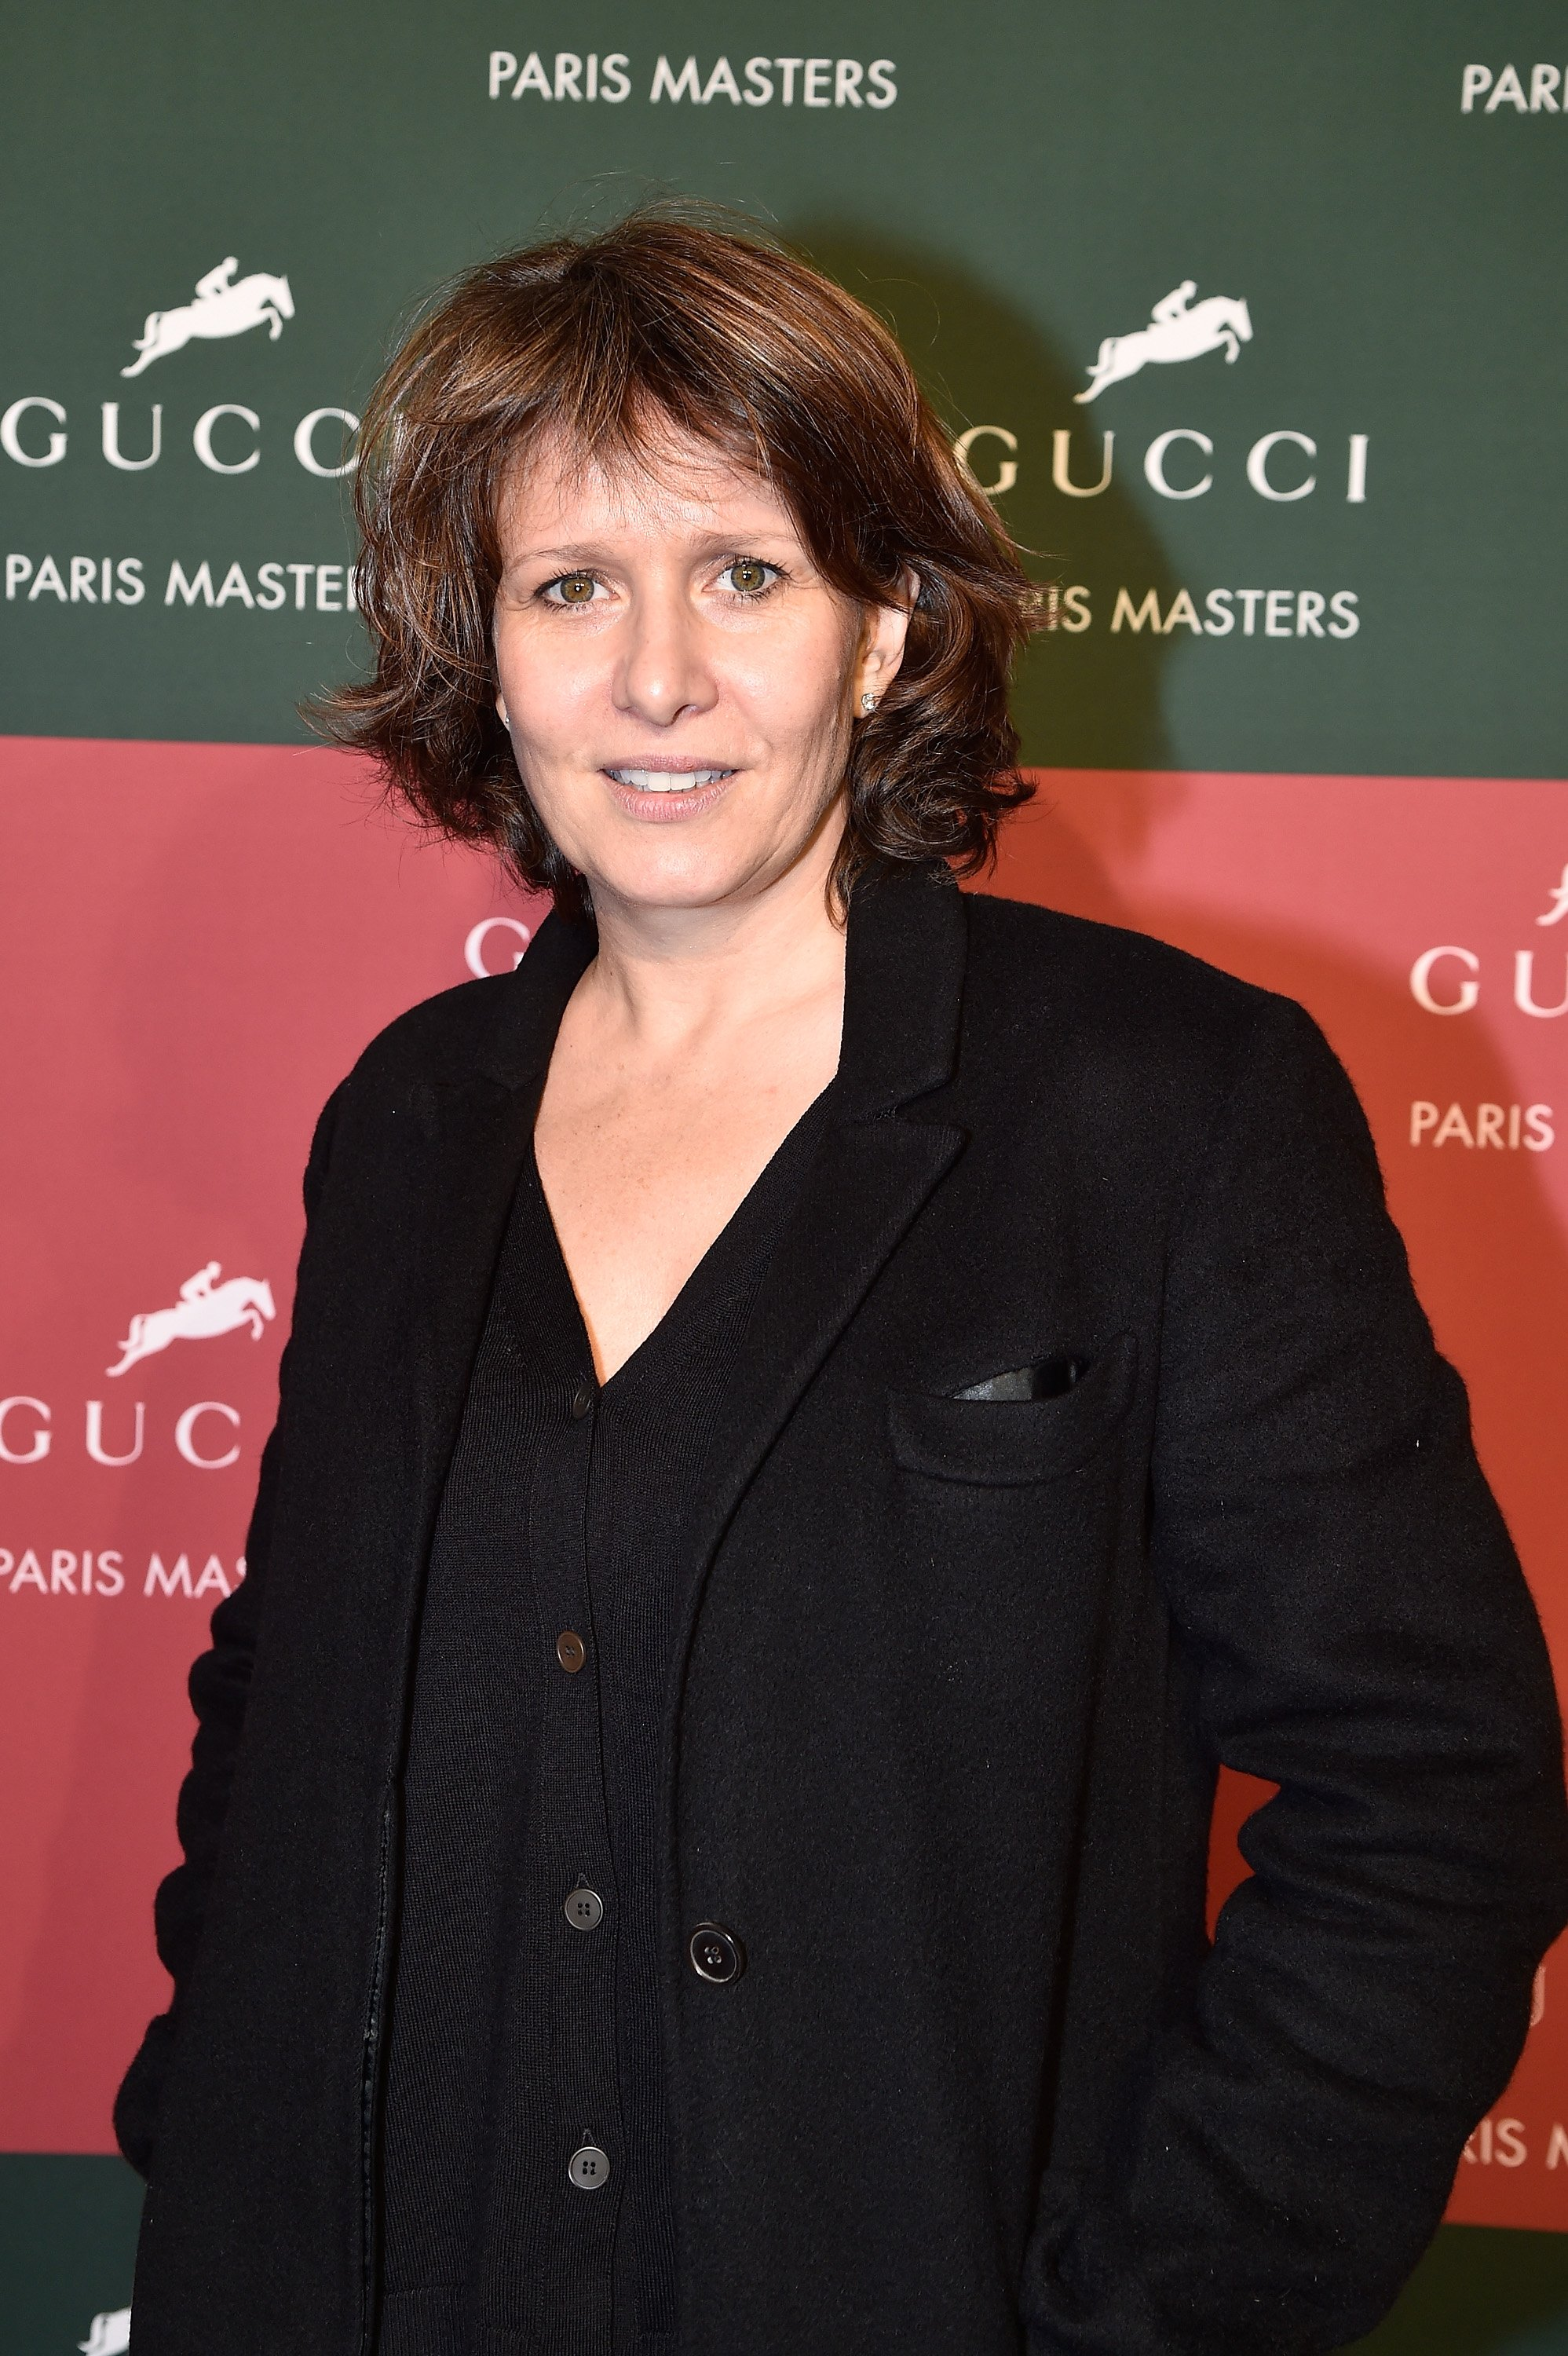 Carole Rousseau assiste à la deuxième journée des Gucci Paris Masters 2014 le 5 décembre 2014 à Villepinte, France. | Photo : Getty Images